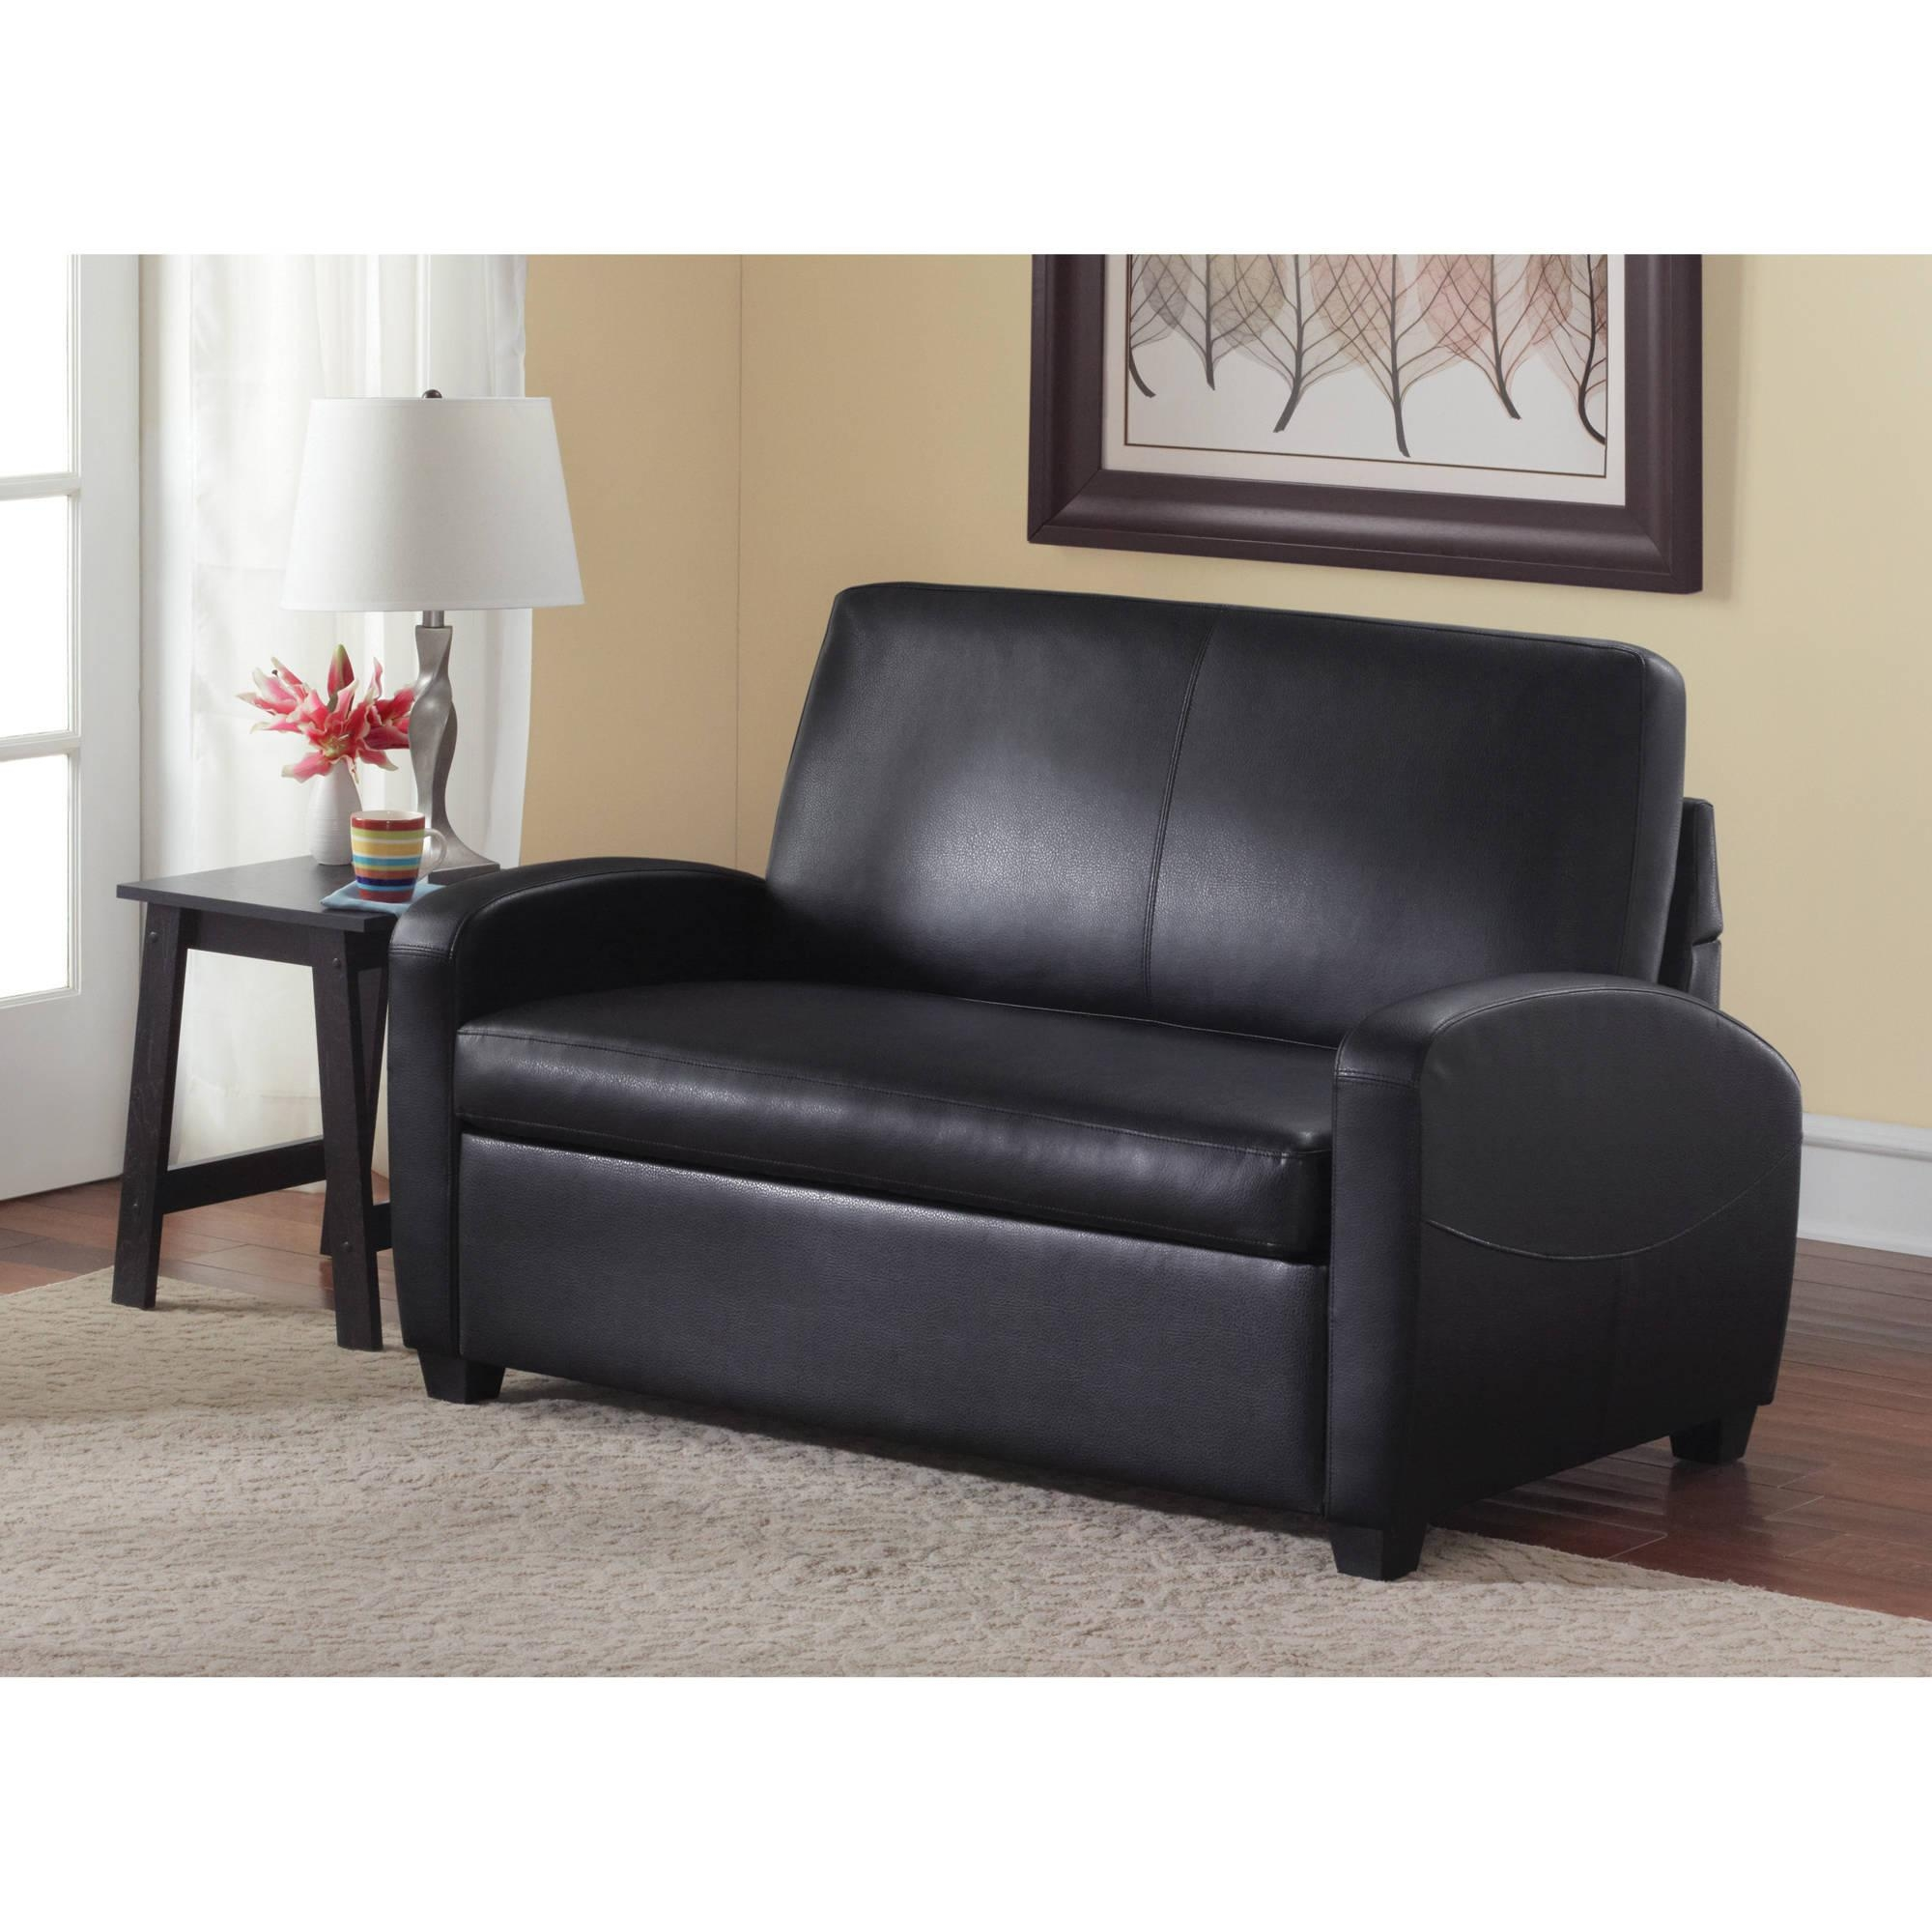 Mainstays Sofa Sleeper, Black – Walmart Pertaining To Wallmart Sofa (View 19 of 20)